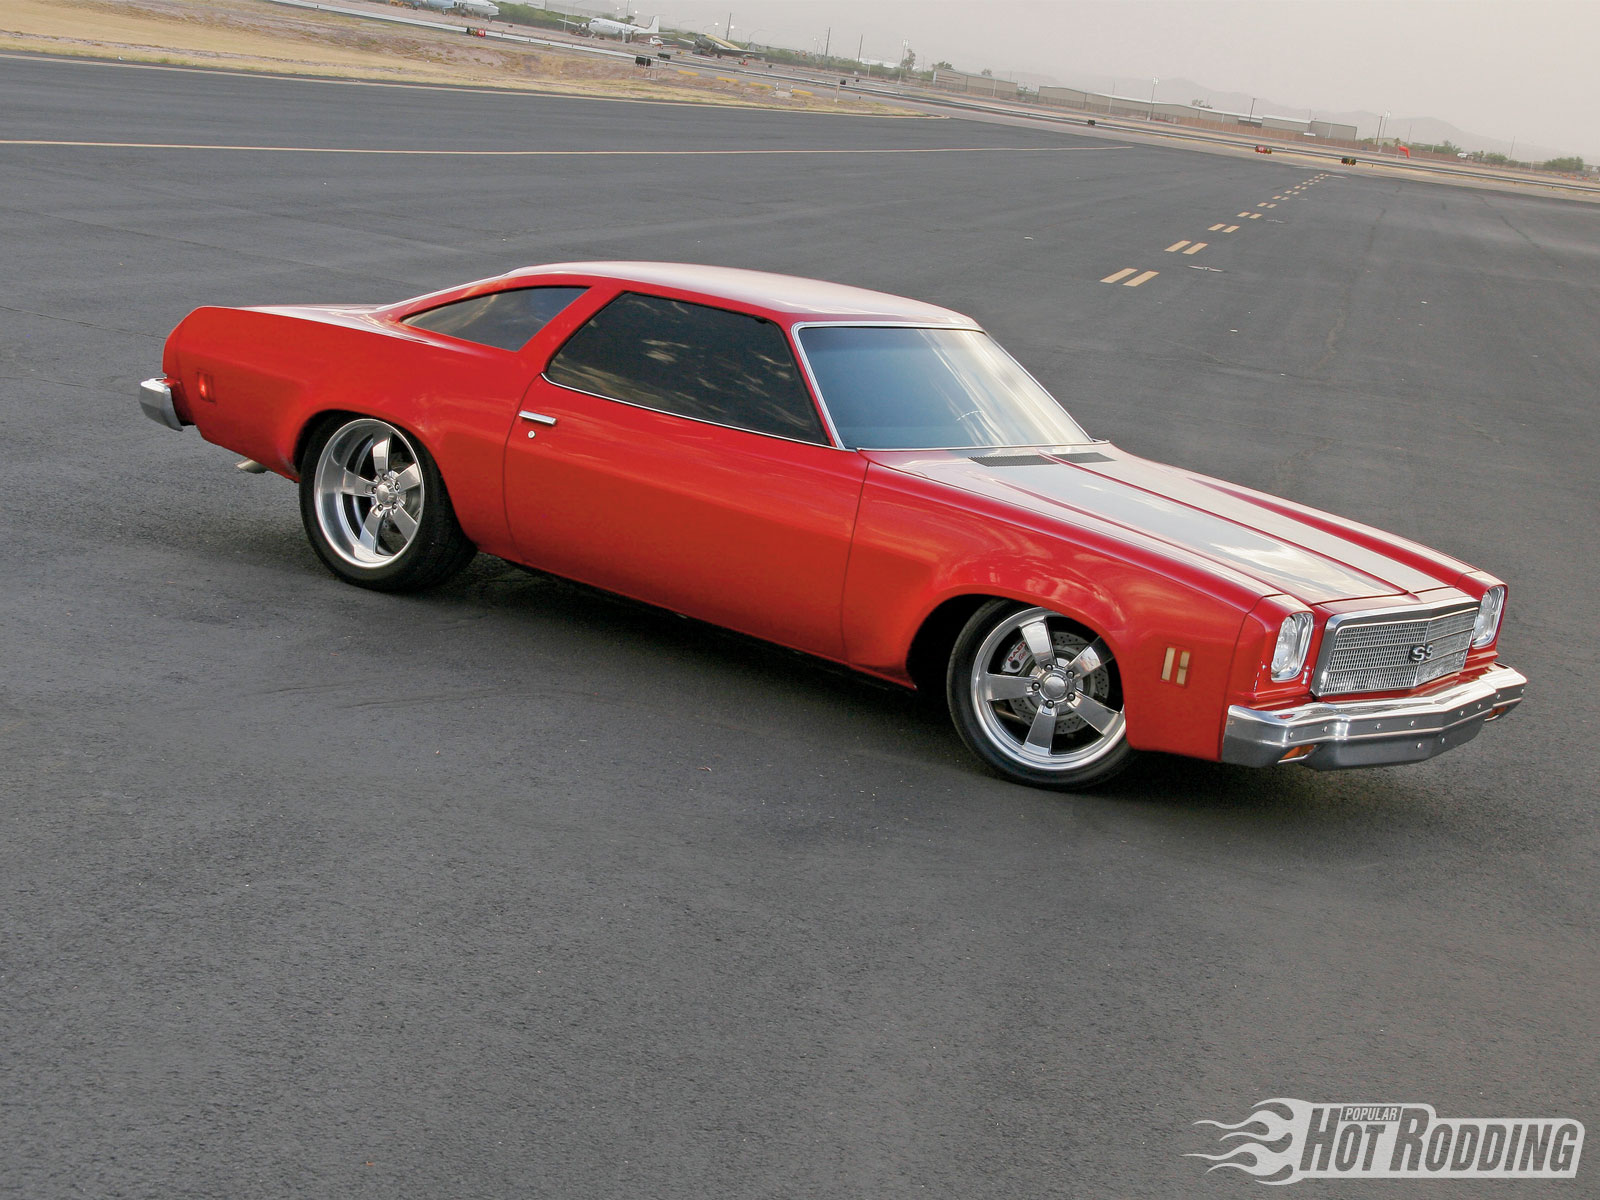 1972 Chevrolet Malibu moreover Desertclassic Belairs further 1981 20Ford 20Bronco 08 furthermore 2011 Chevrolet Sonic Z Spec 1 Concept Front Angle 2 1920x1440 moreover Chevy Chevrolet. on chevy classic